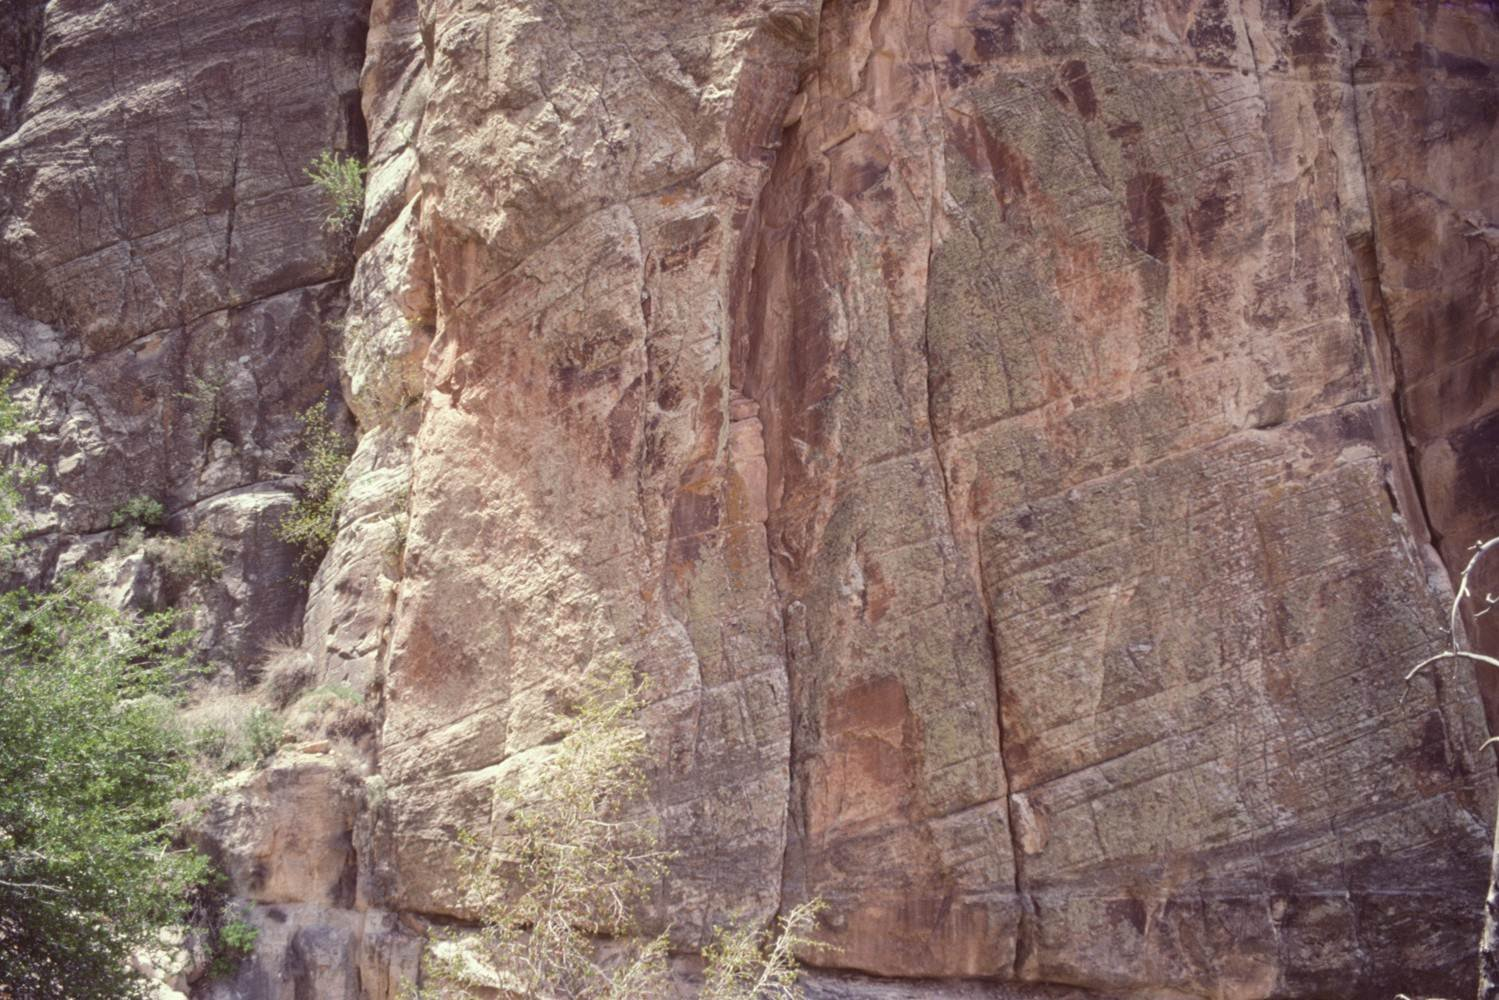 The Petrology of the Coconino Sandstone (Permian), Arizona, USA